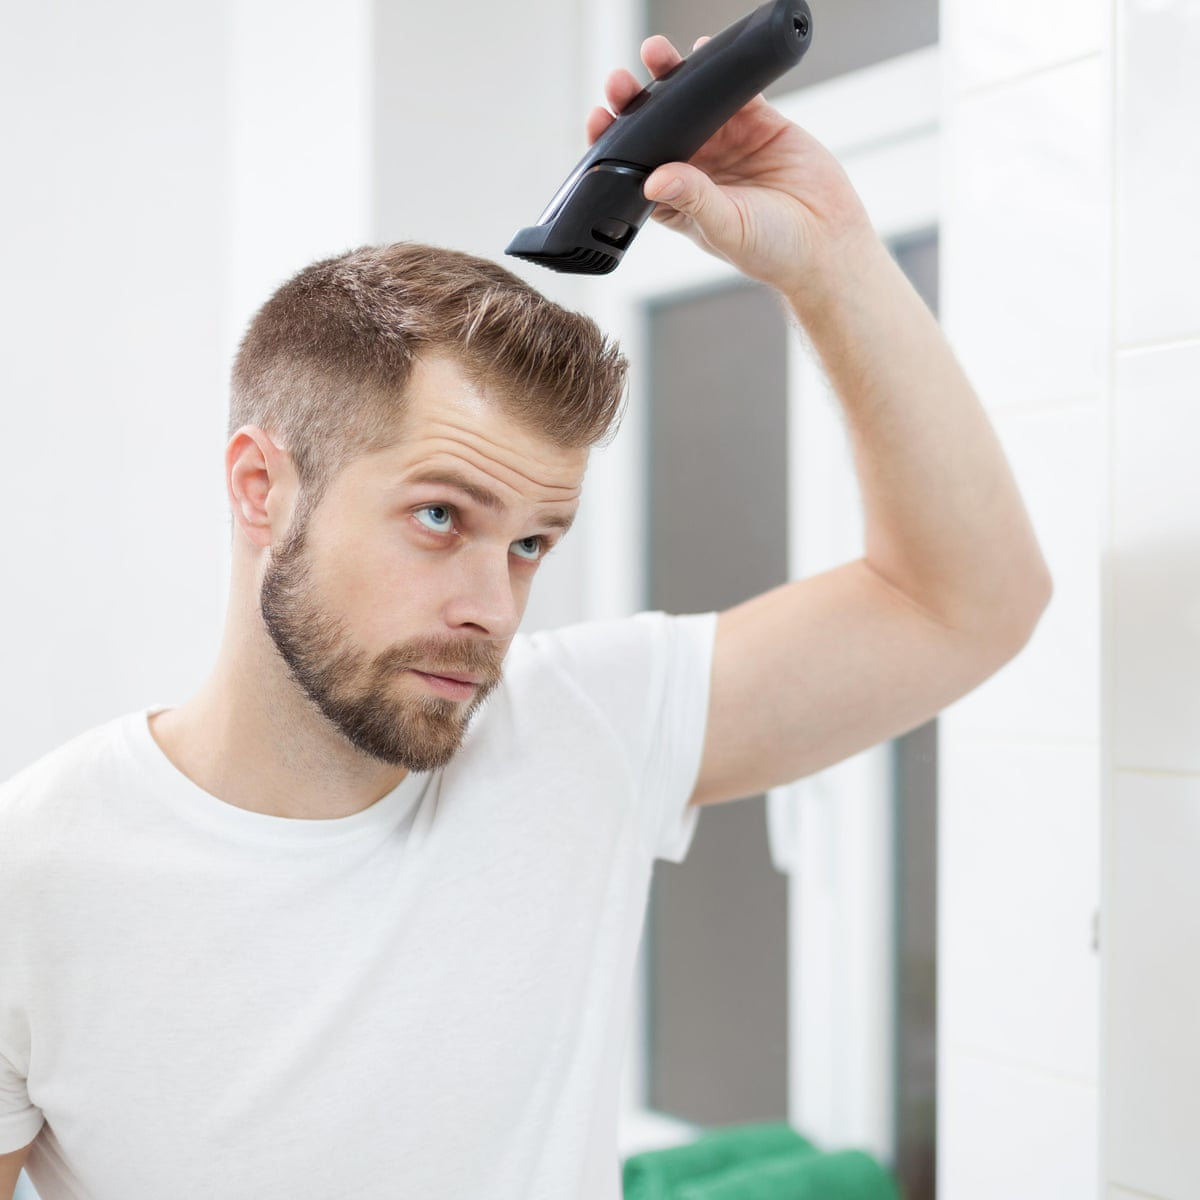 How can I cut my own hair at home?  Money  The Guardian